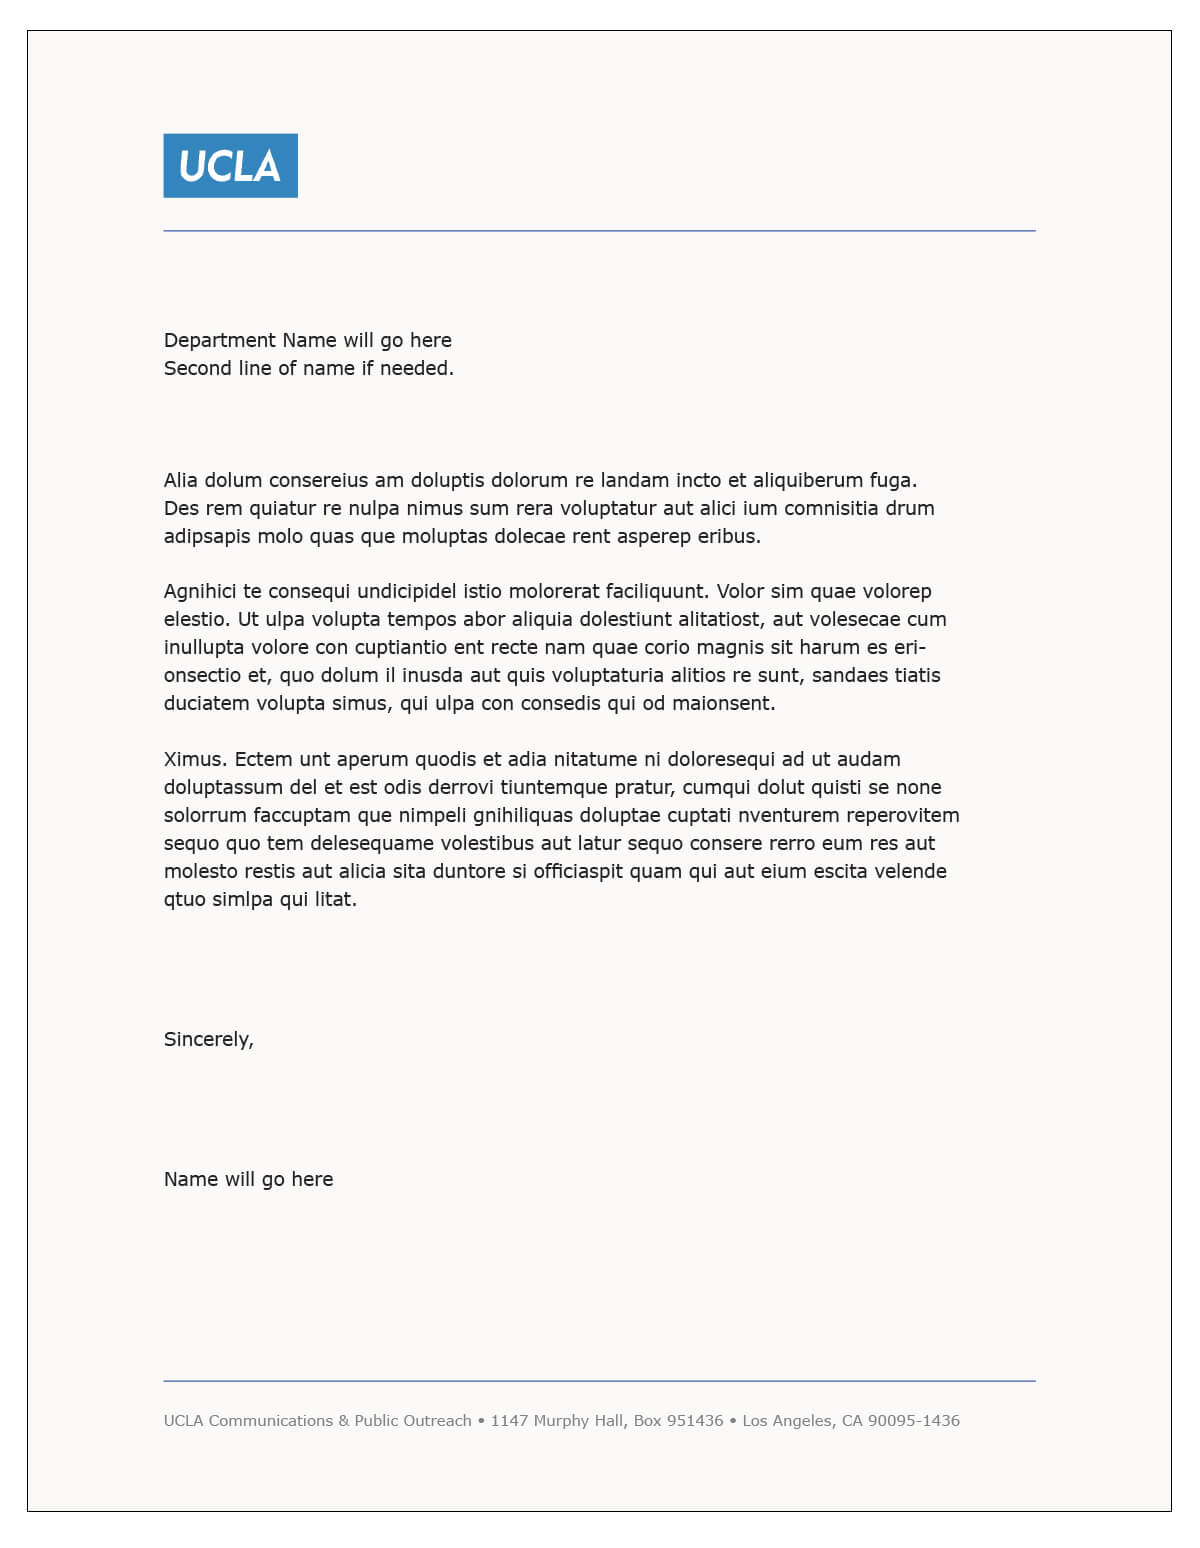 Letterhead Template Word - Fotolip Pertaining To Headed Letter Template Word